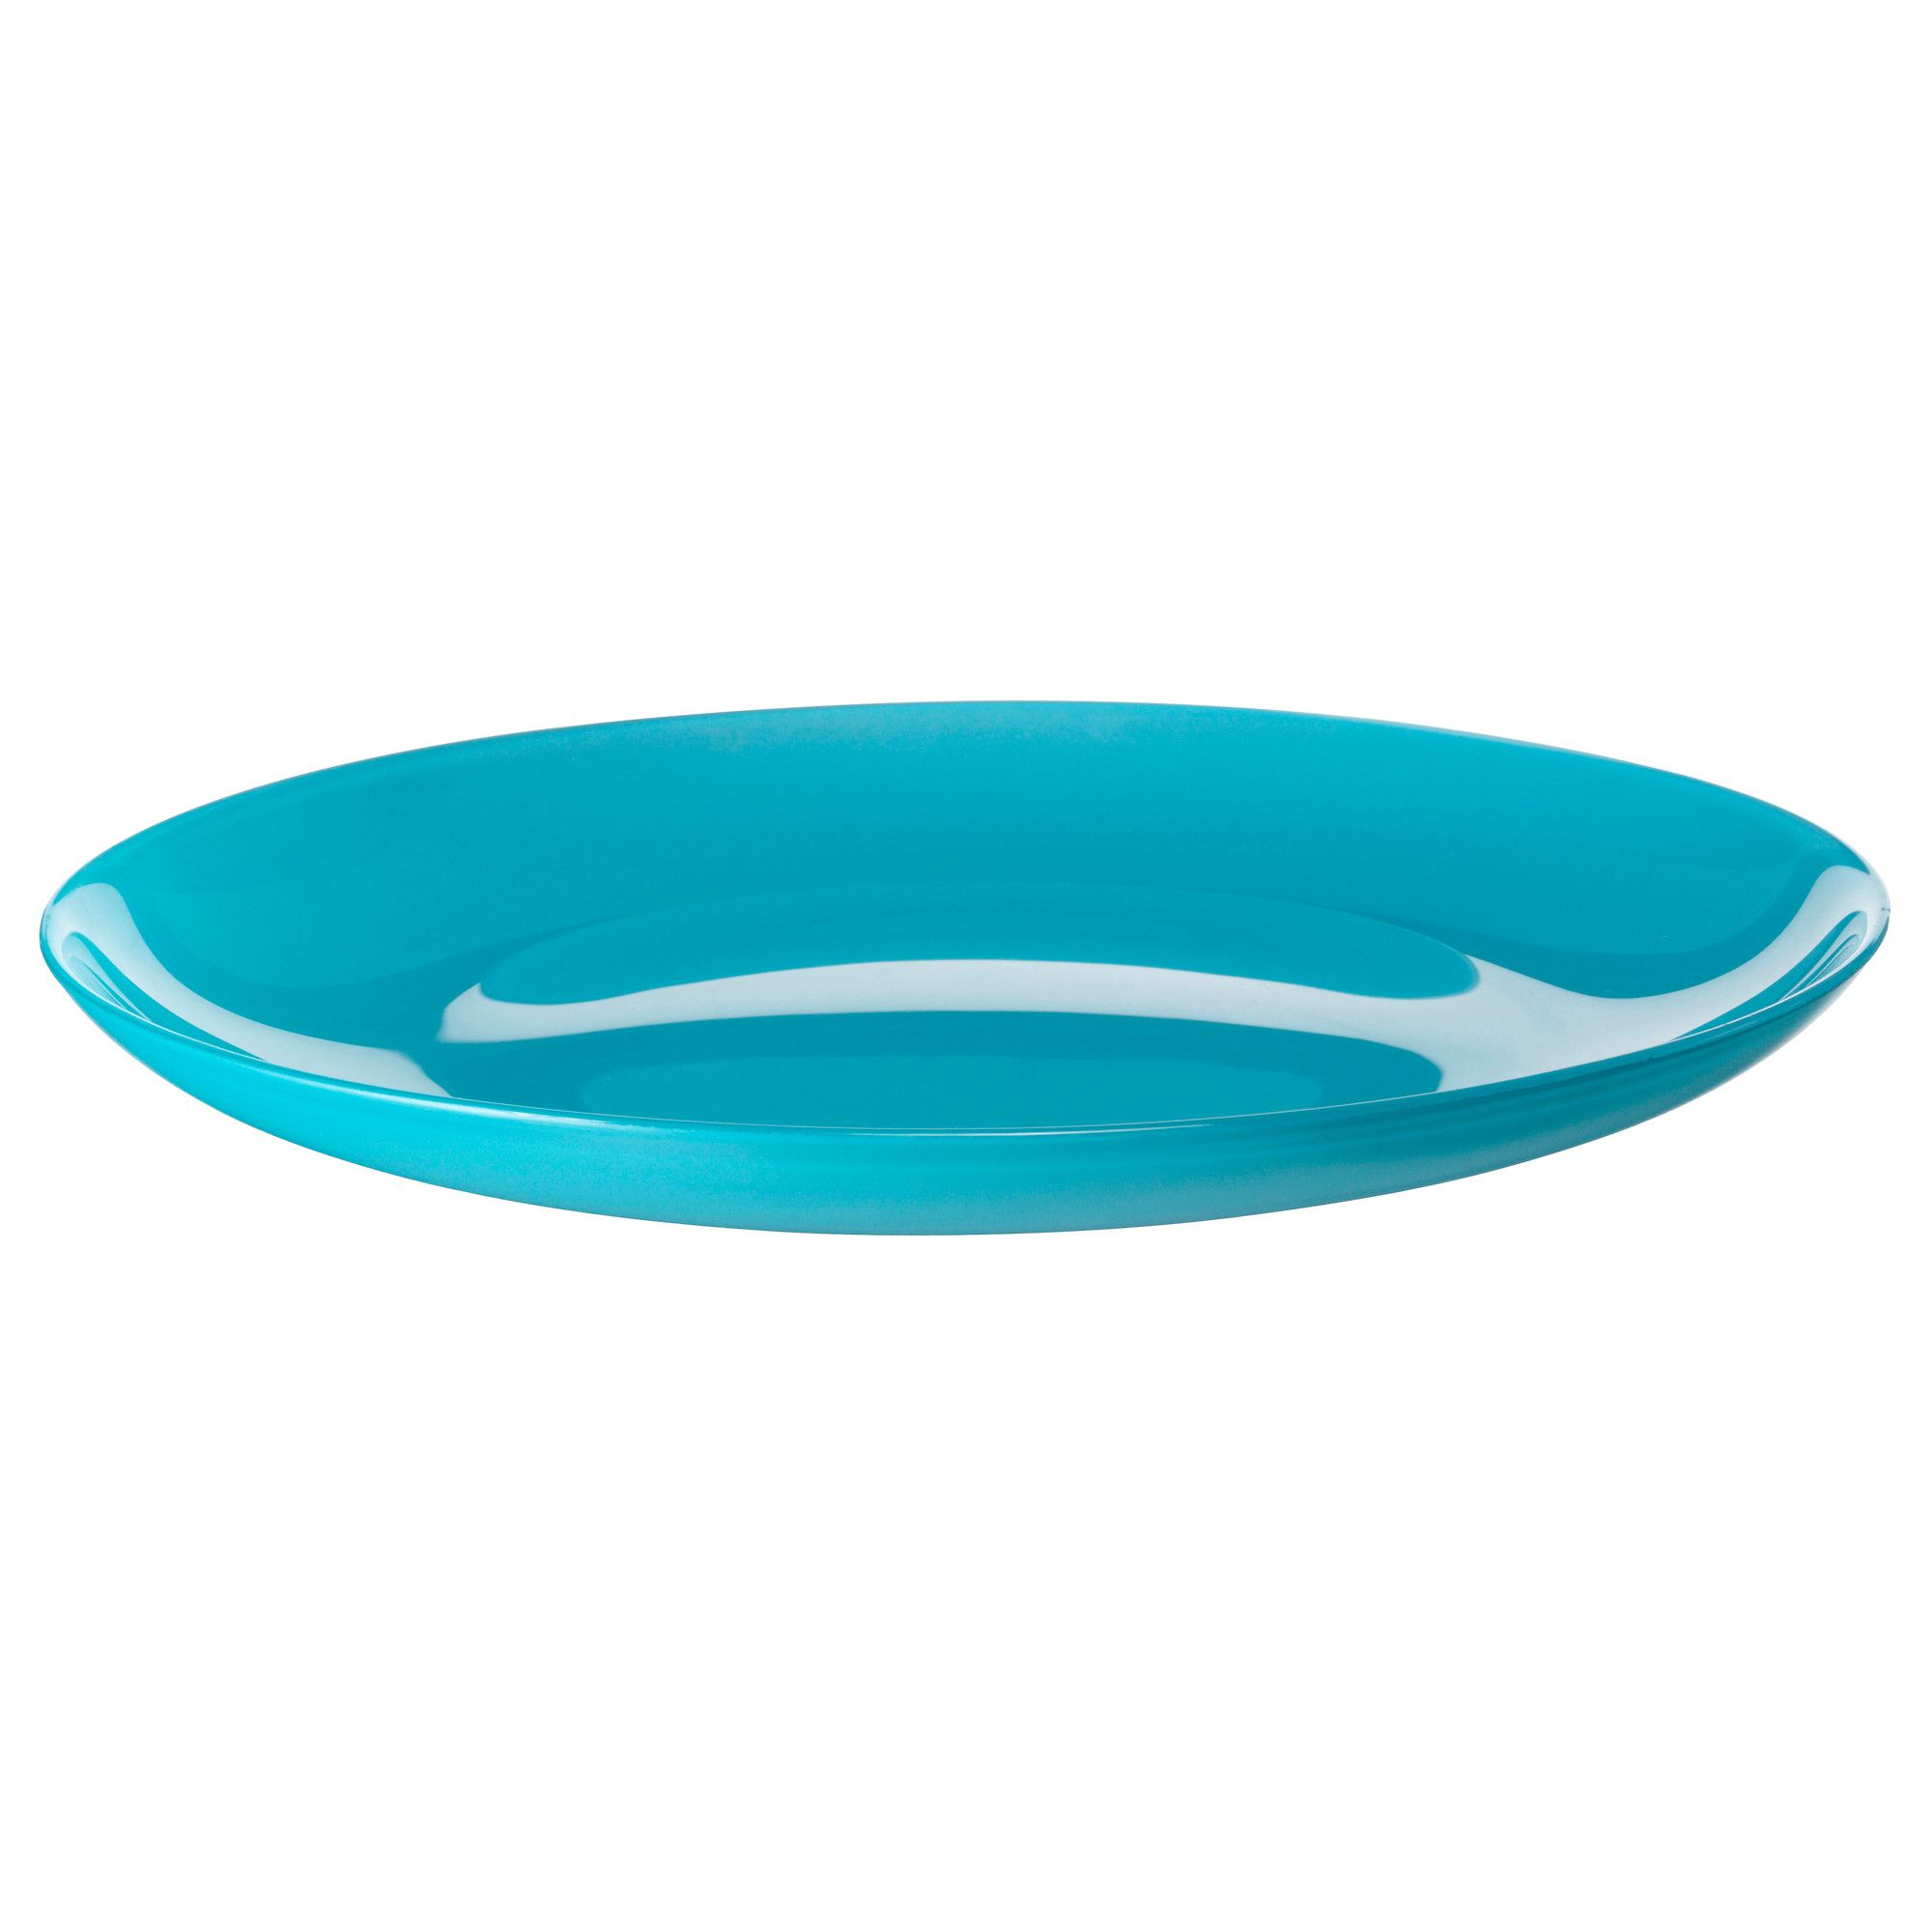 GODTA Side plate - turquoise - IKEA $2.99 | To buy | Pinterest ...